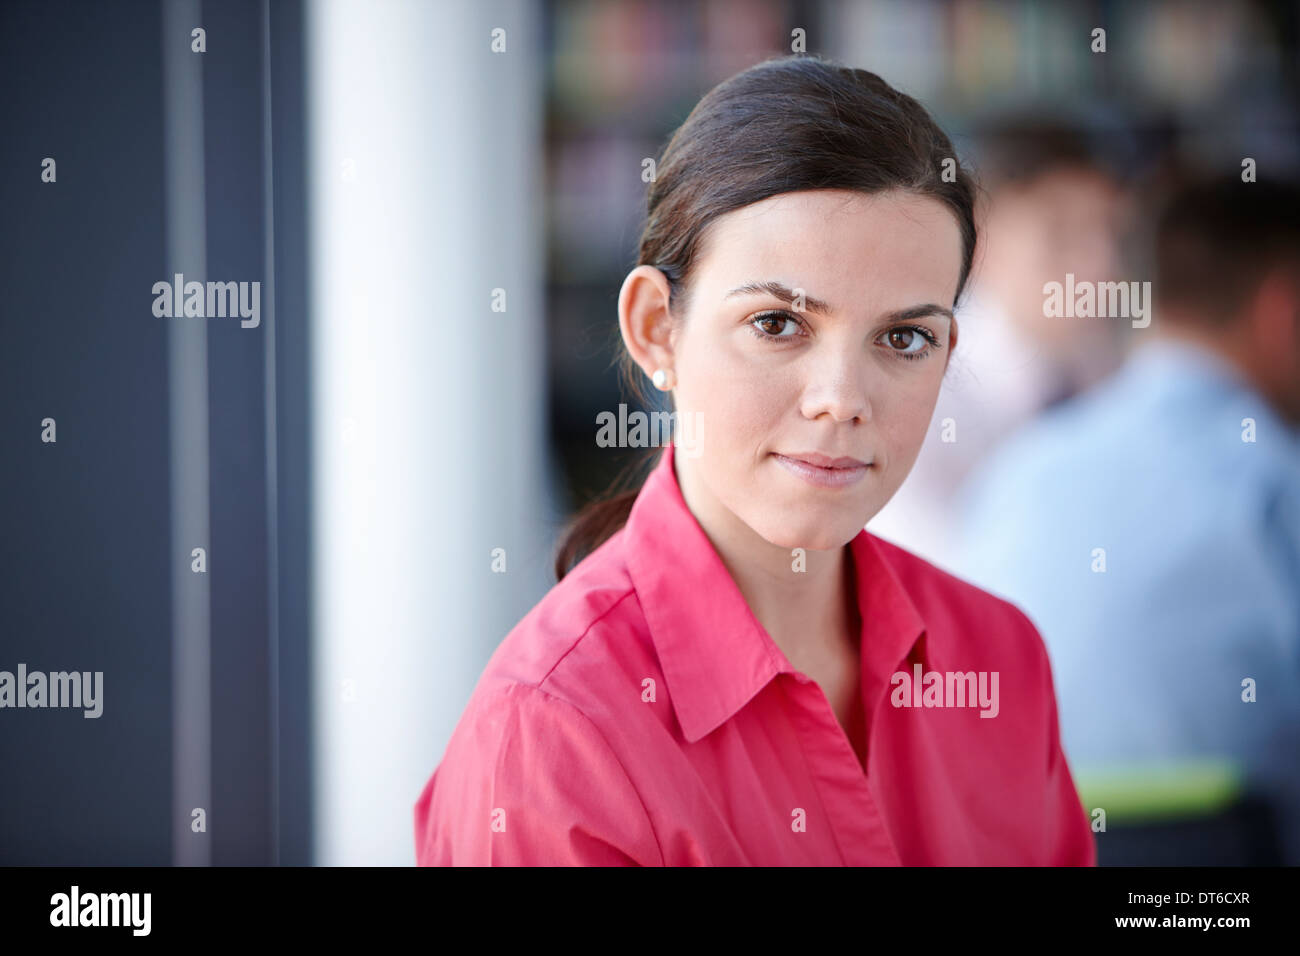 Portrait of businesswoman in red blouse - Stock Image